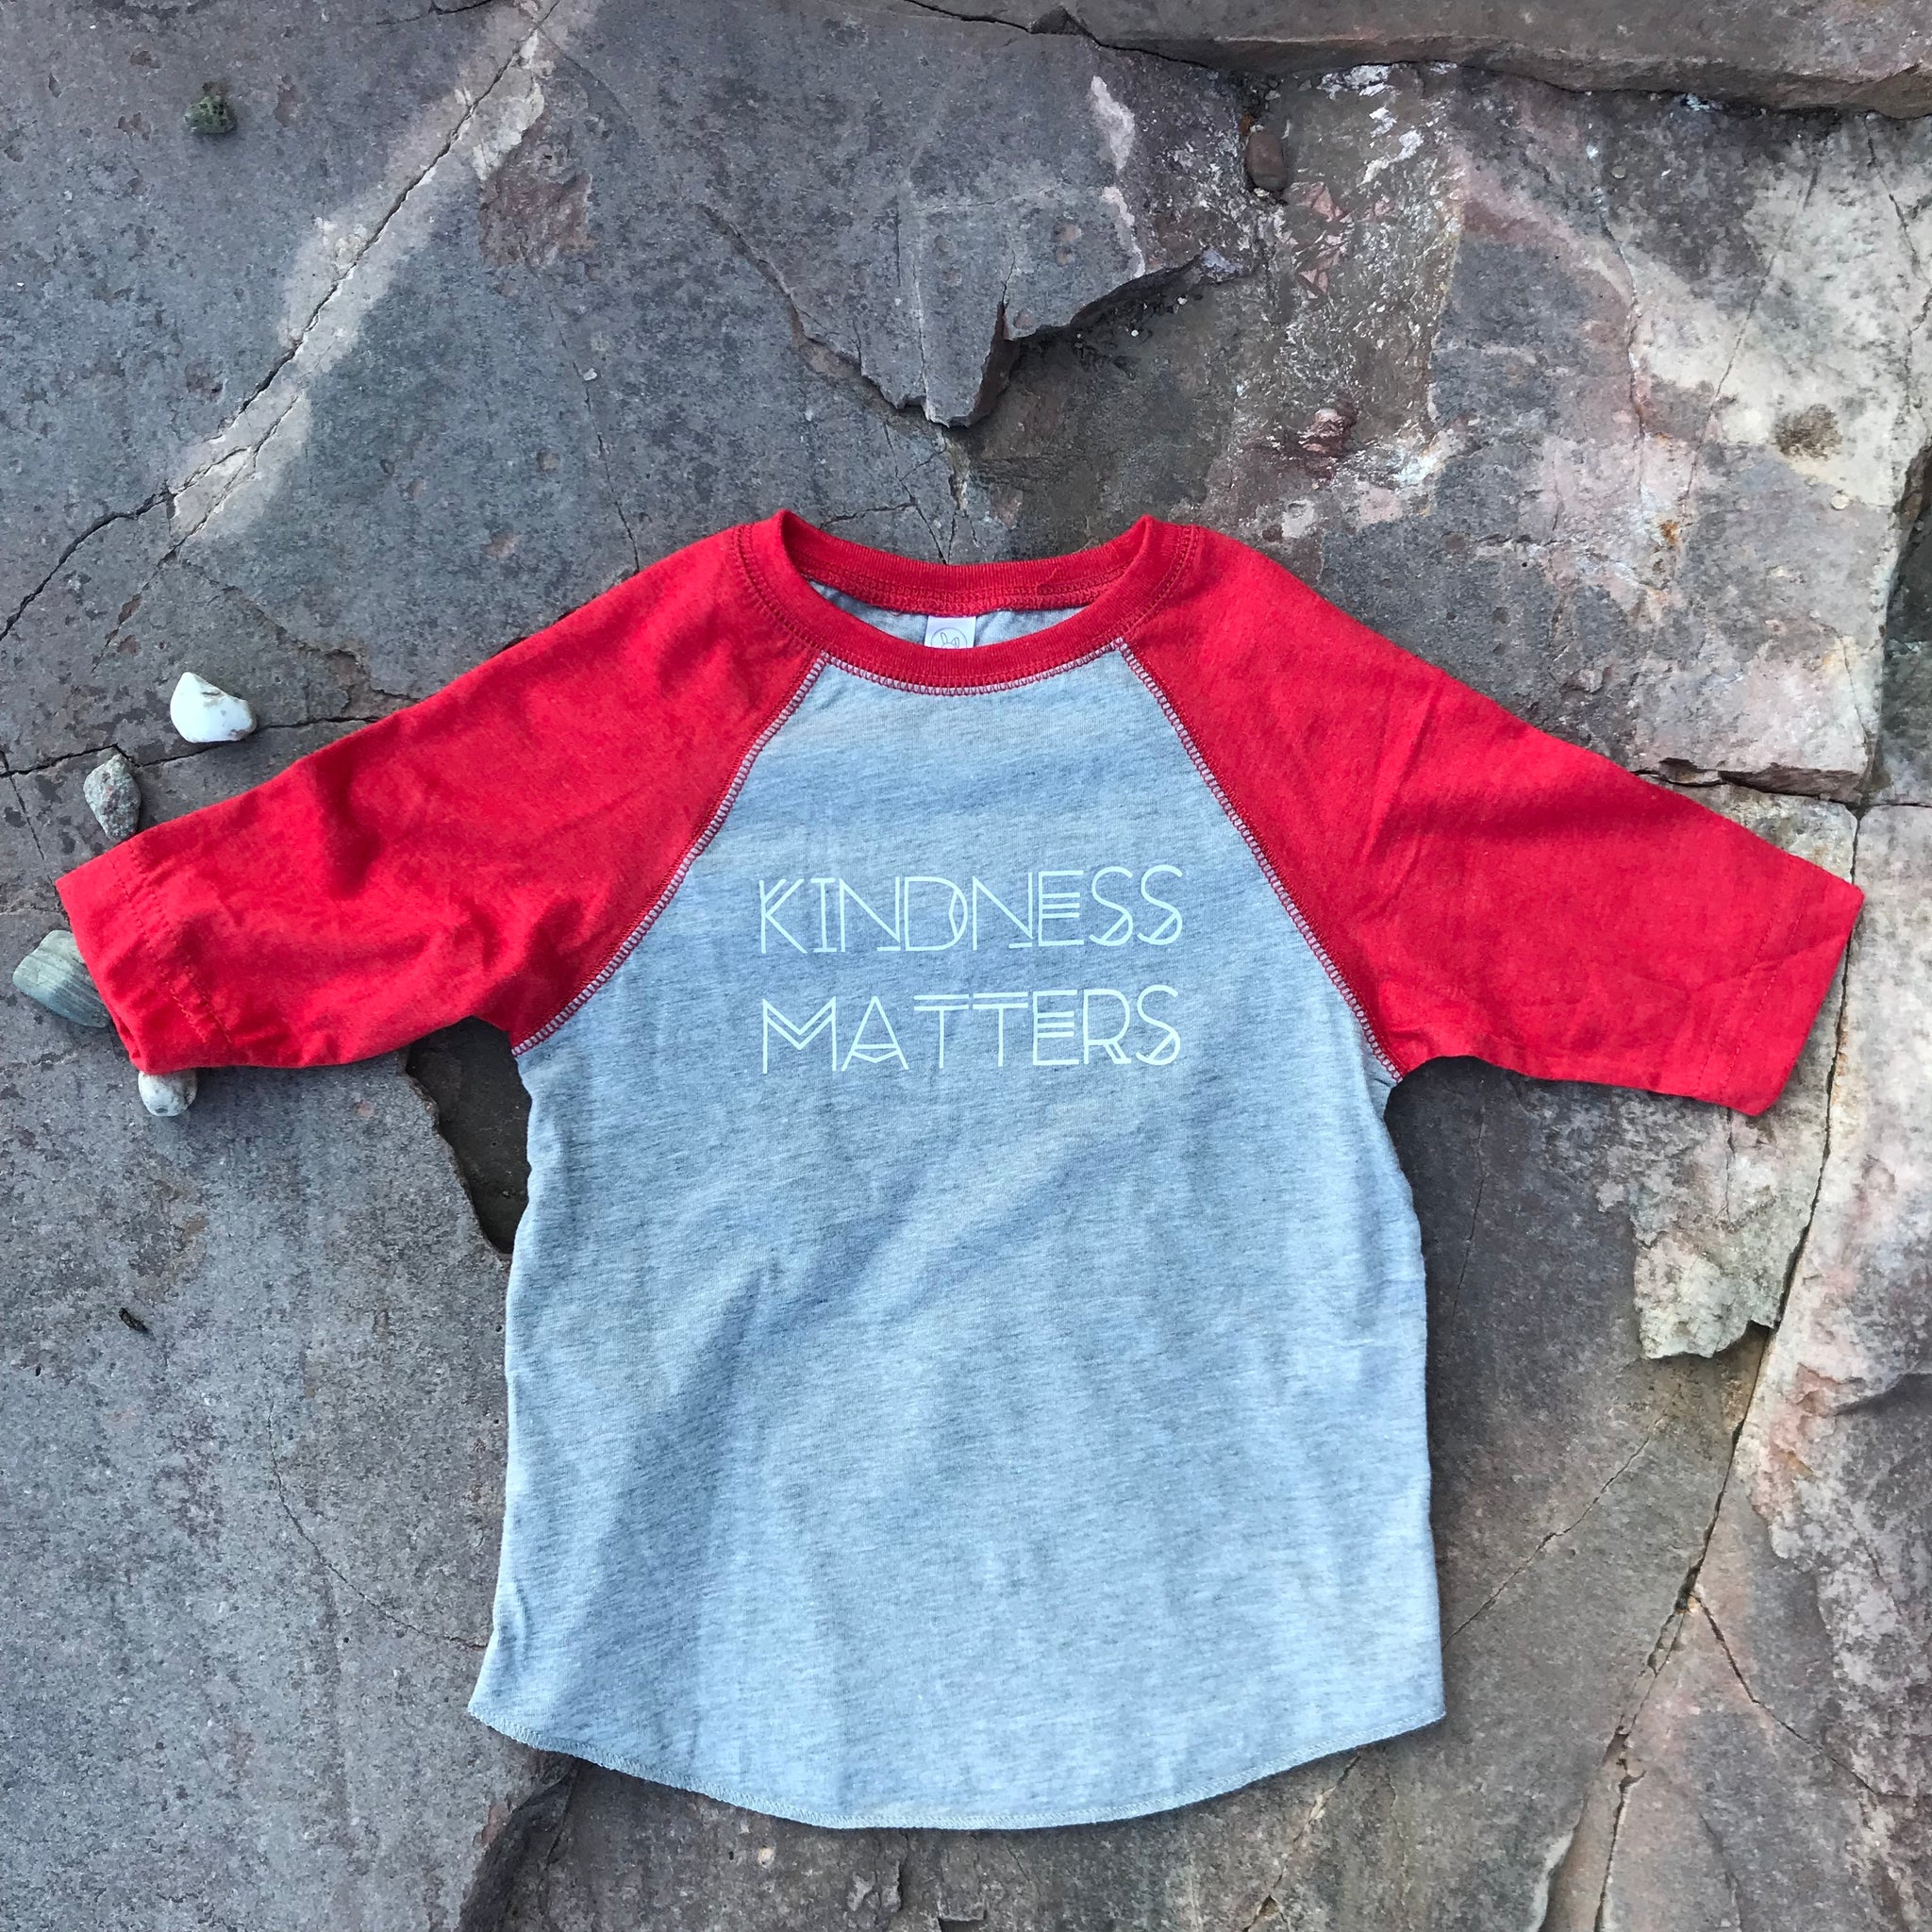 KINDNESS MATTERS 3/4 Sleeve Toddler T-shirt